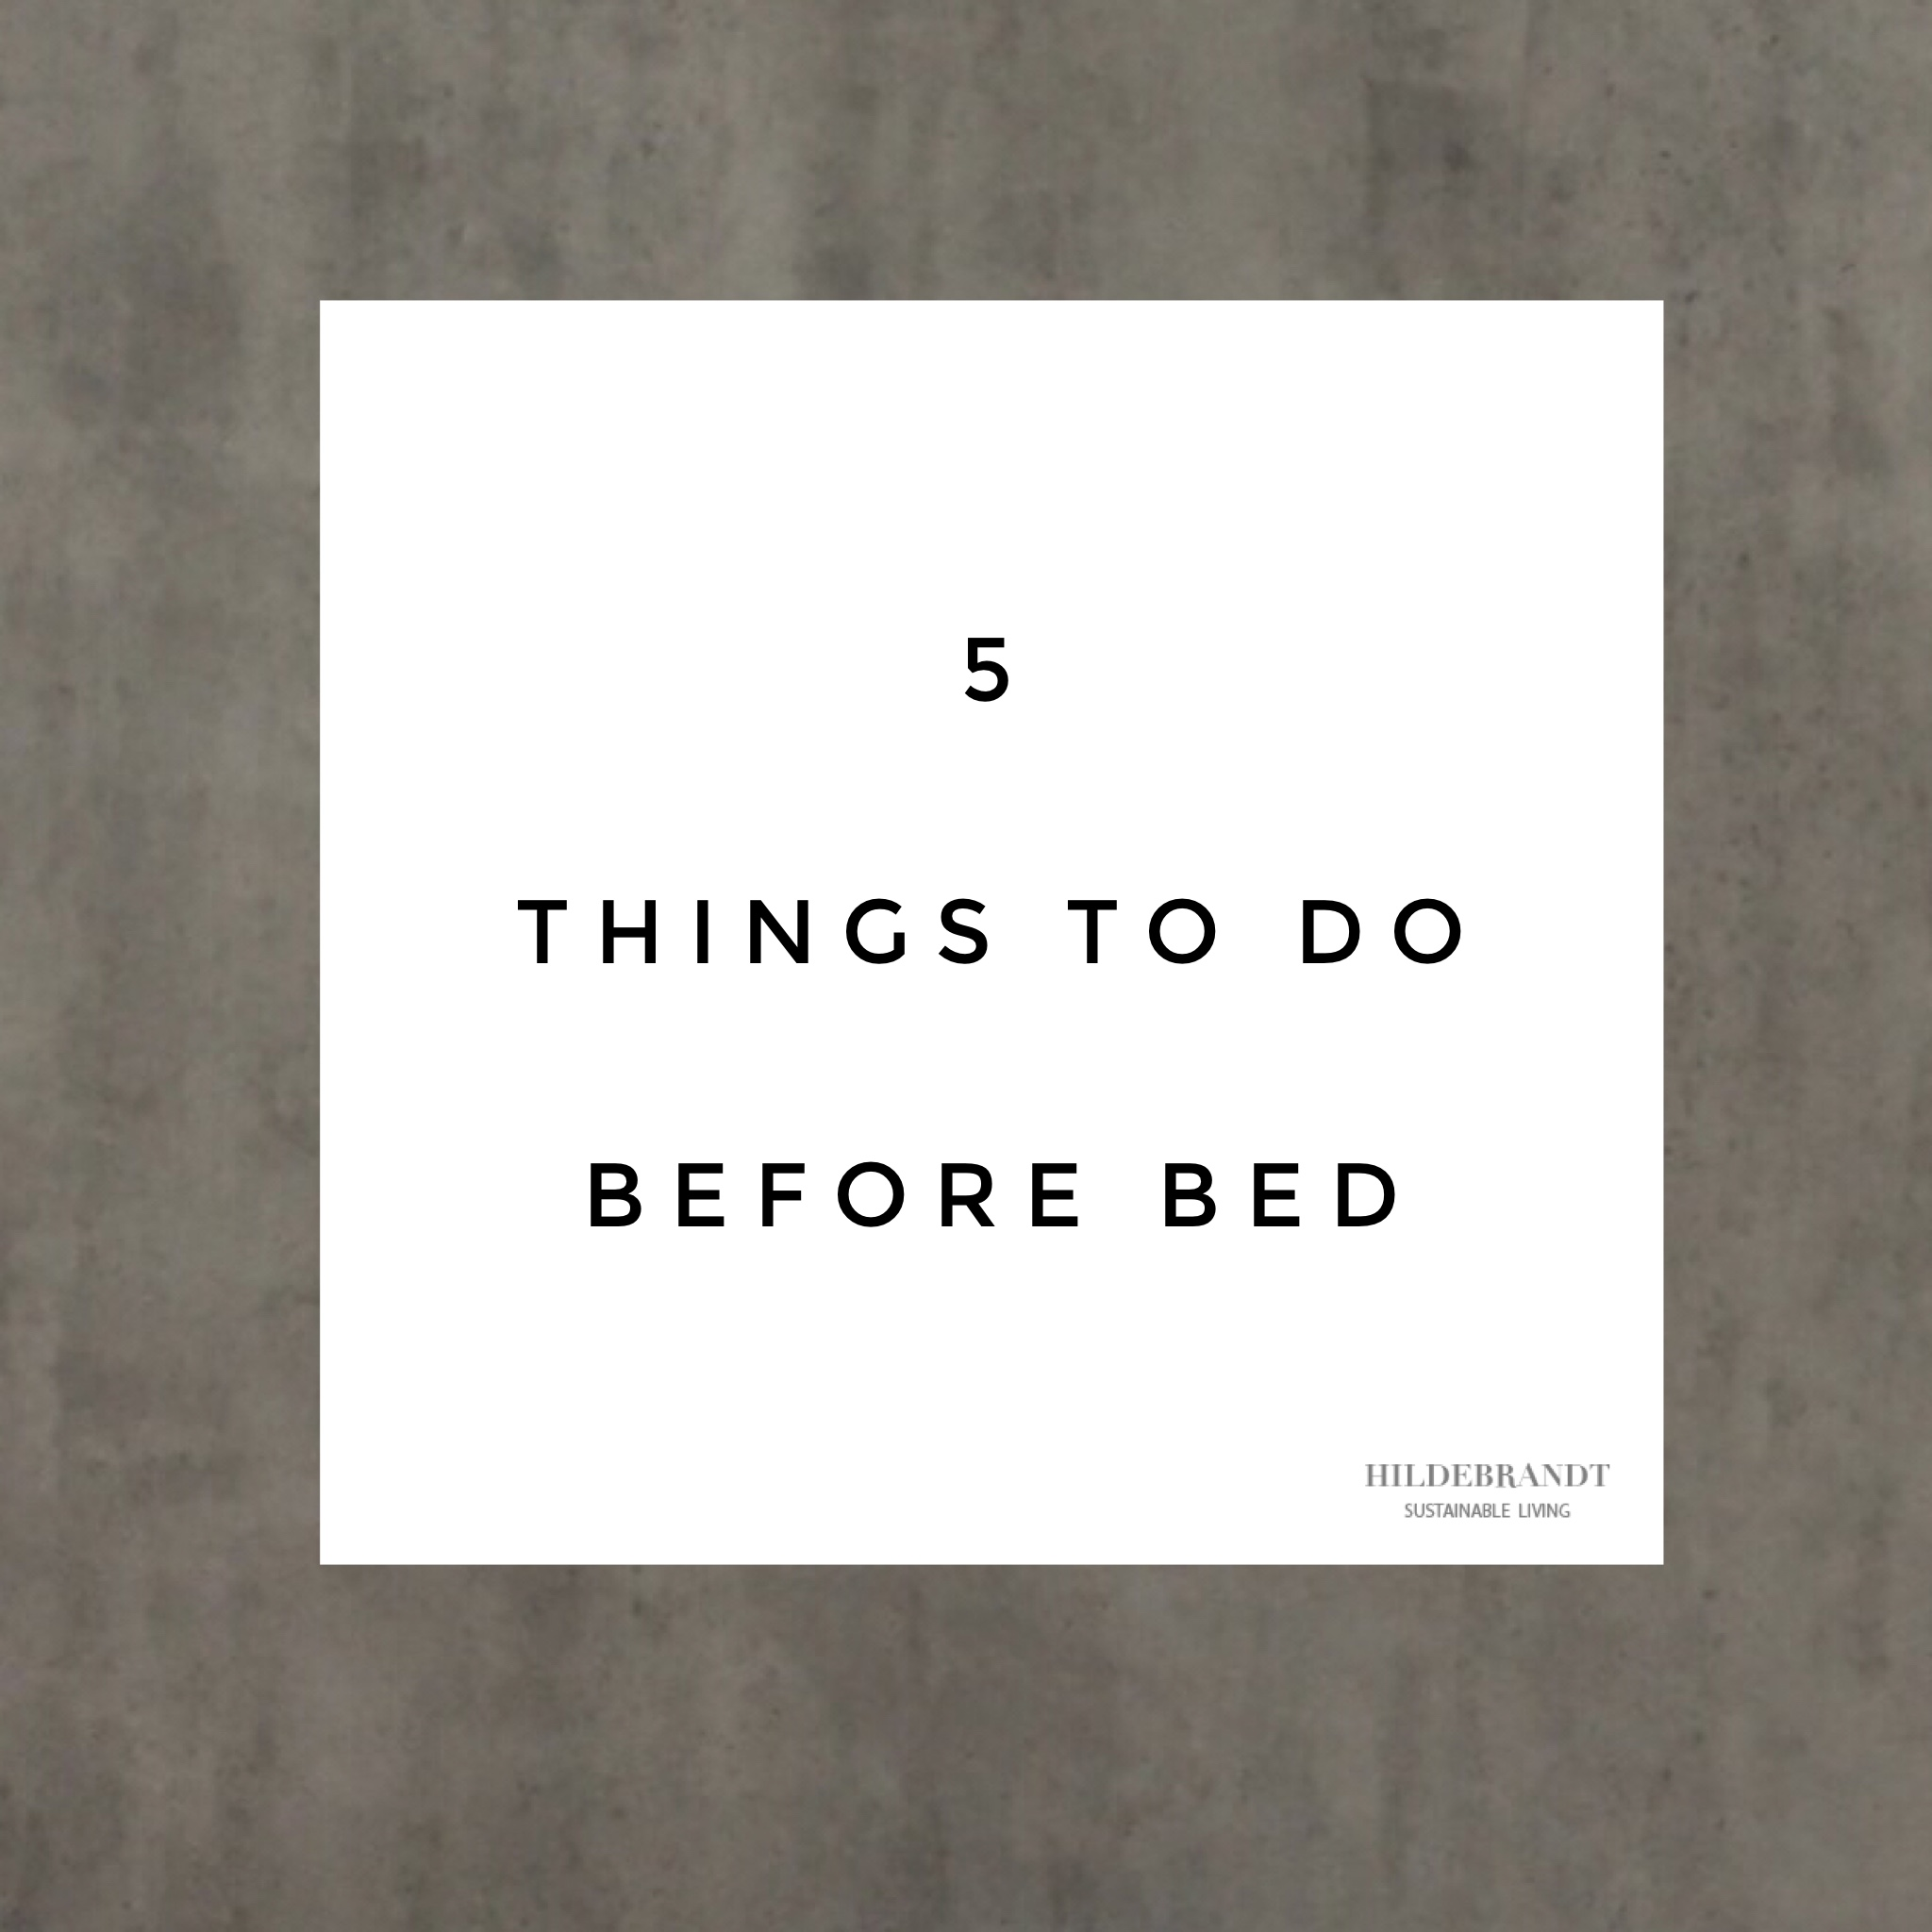 5-things-to-do-before-bed-minimalism-slow-living